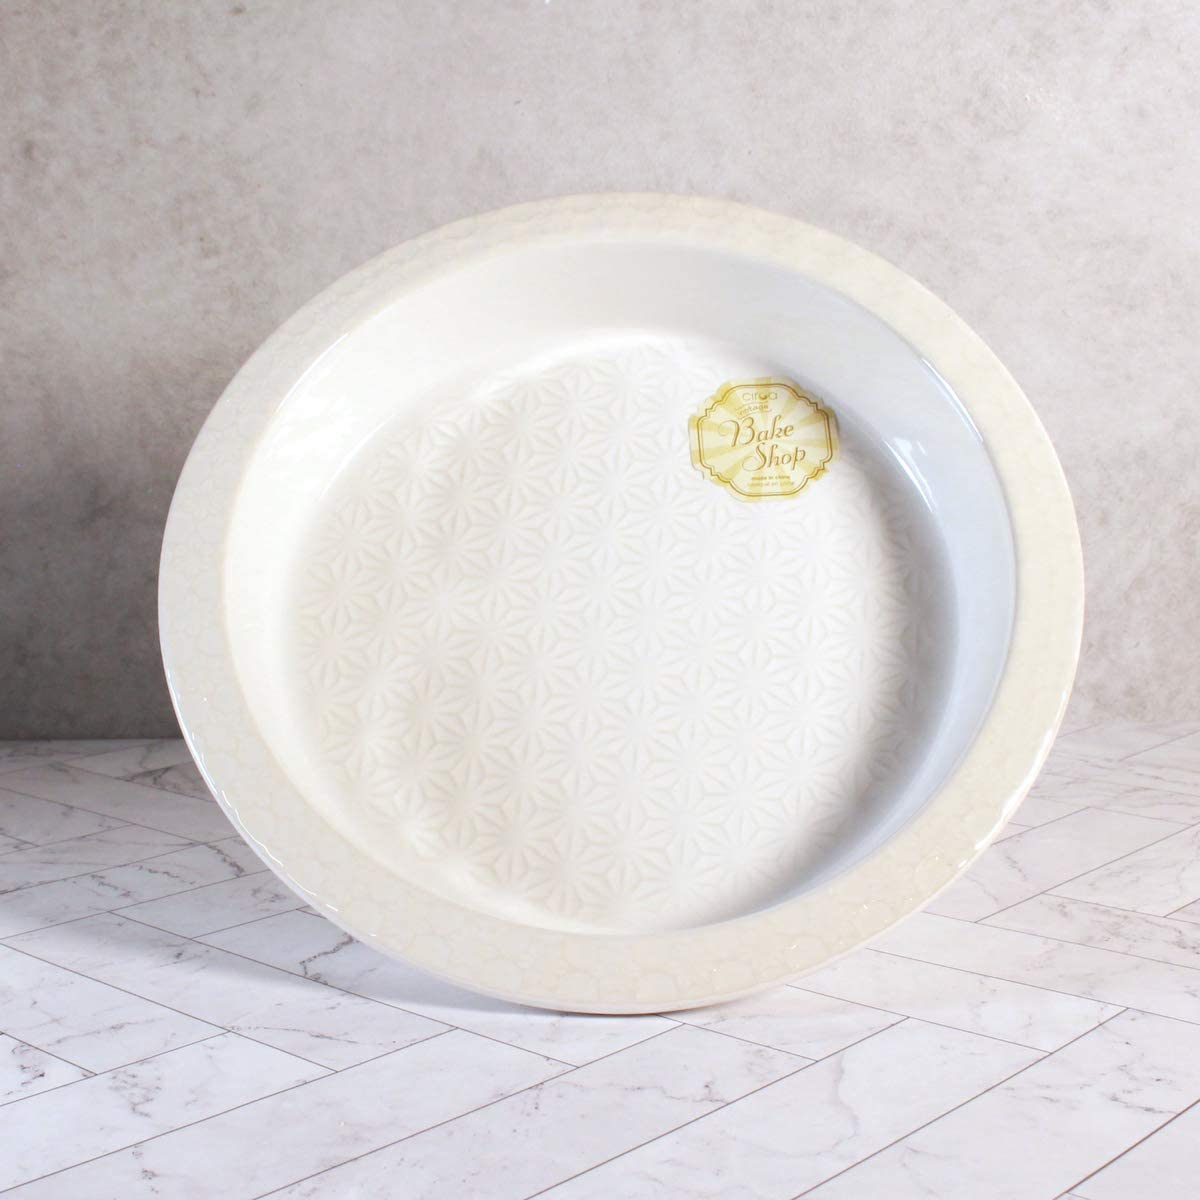 9 Inch Deep Pie Plate Perfect for Baking Pies /& Quiches or Serving White Ceramic Pie Dish by CIROA